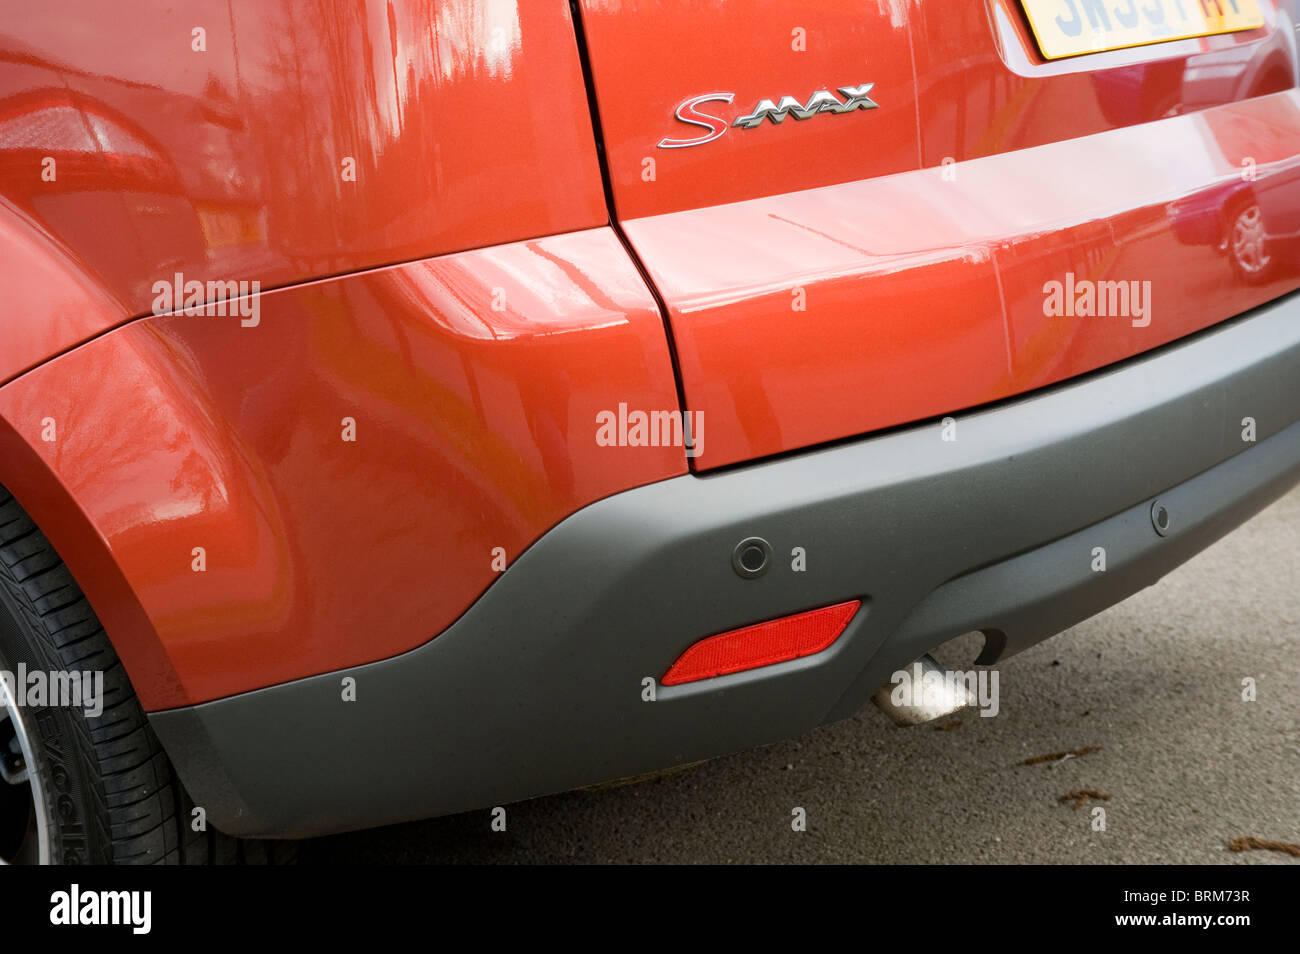 Close up view of rear of a ford s-max people carrier car showing parking sensors. - Stock Image